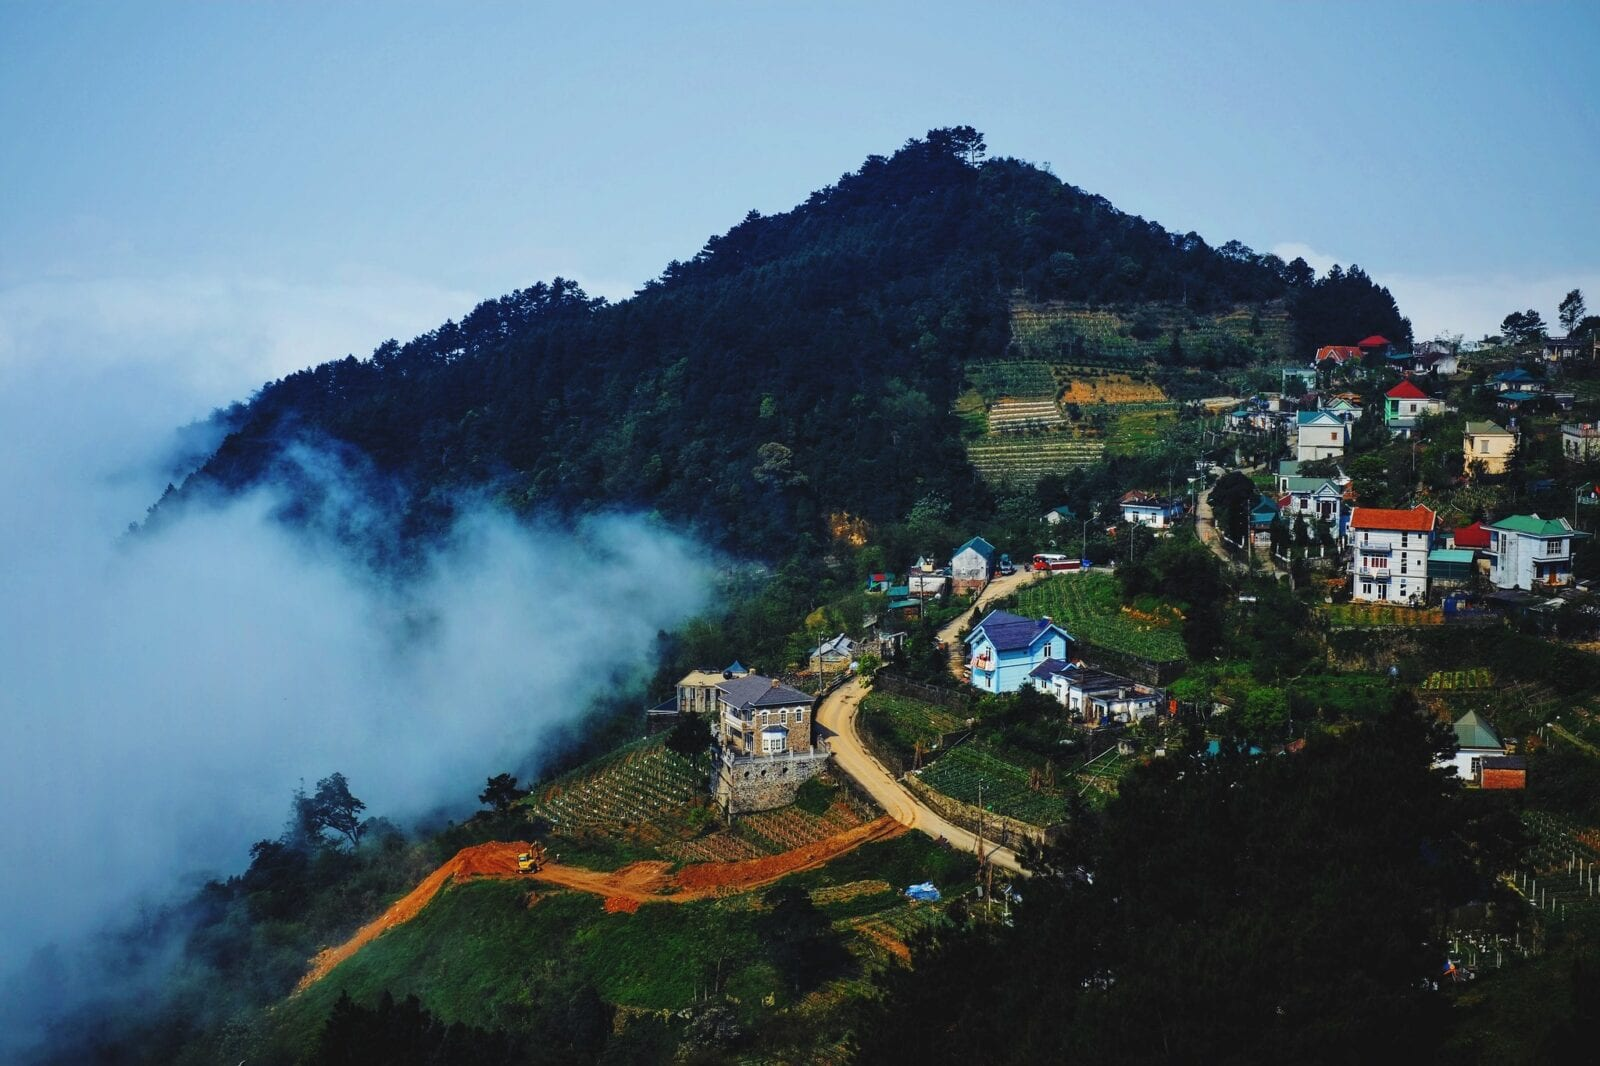 Image of the Tam Dao village in Tam Dao National Park, Vietnam